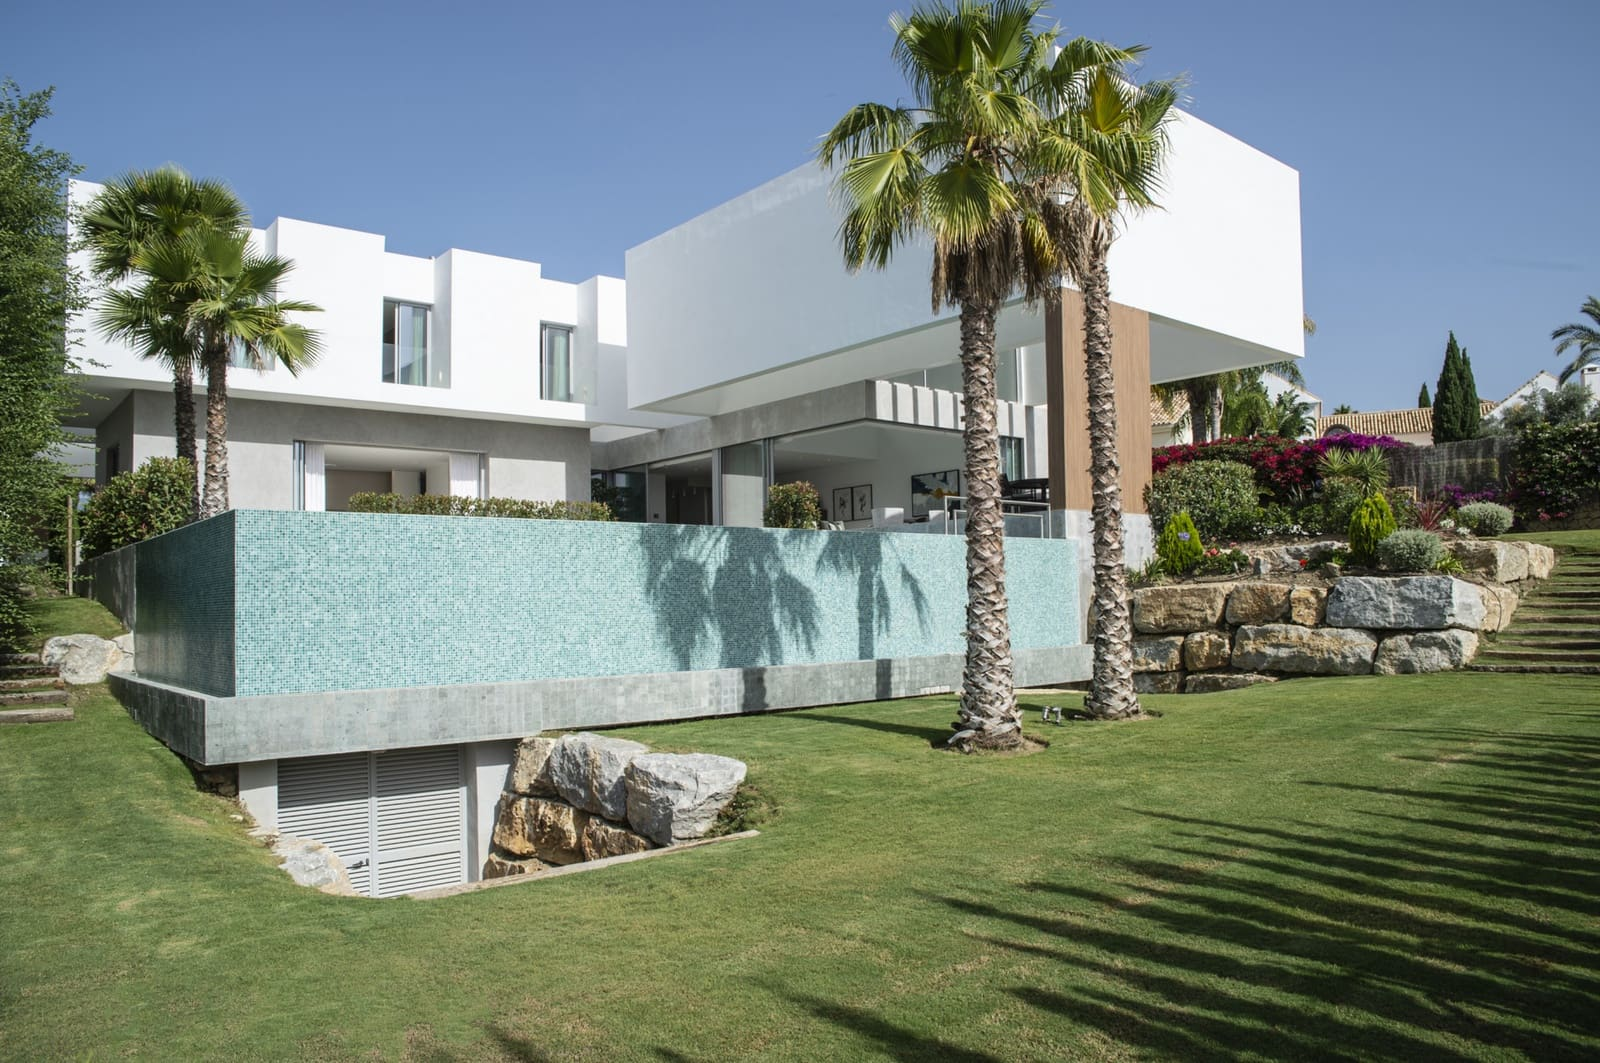 5 bedroom Villa for sale in Benahavis with pool - € 3,200,000 (Ref: 5958977)